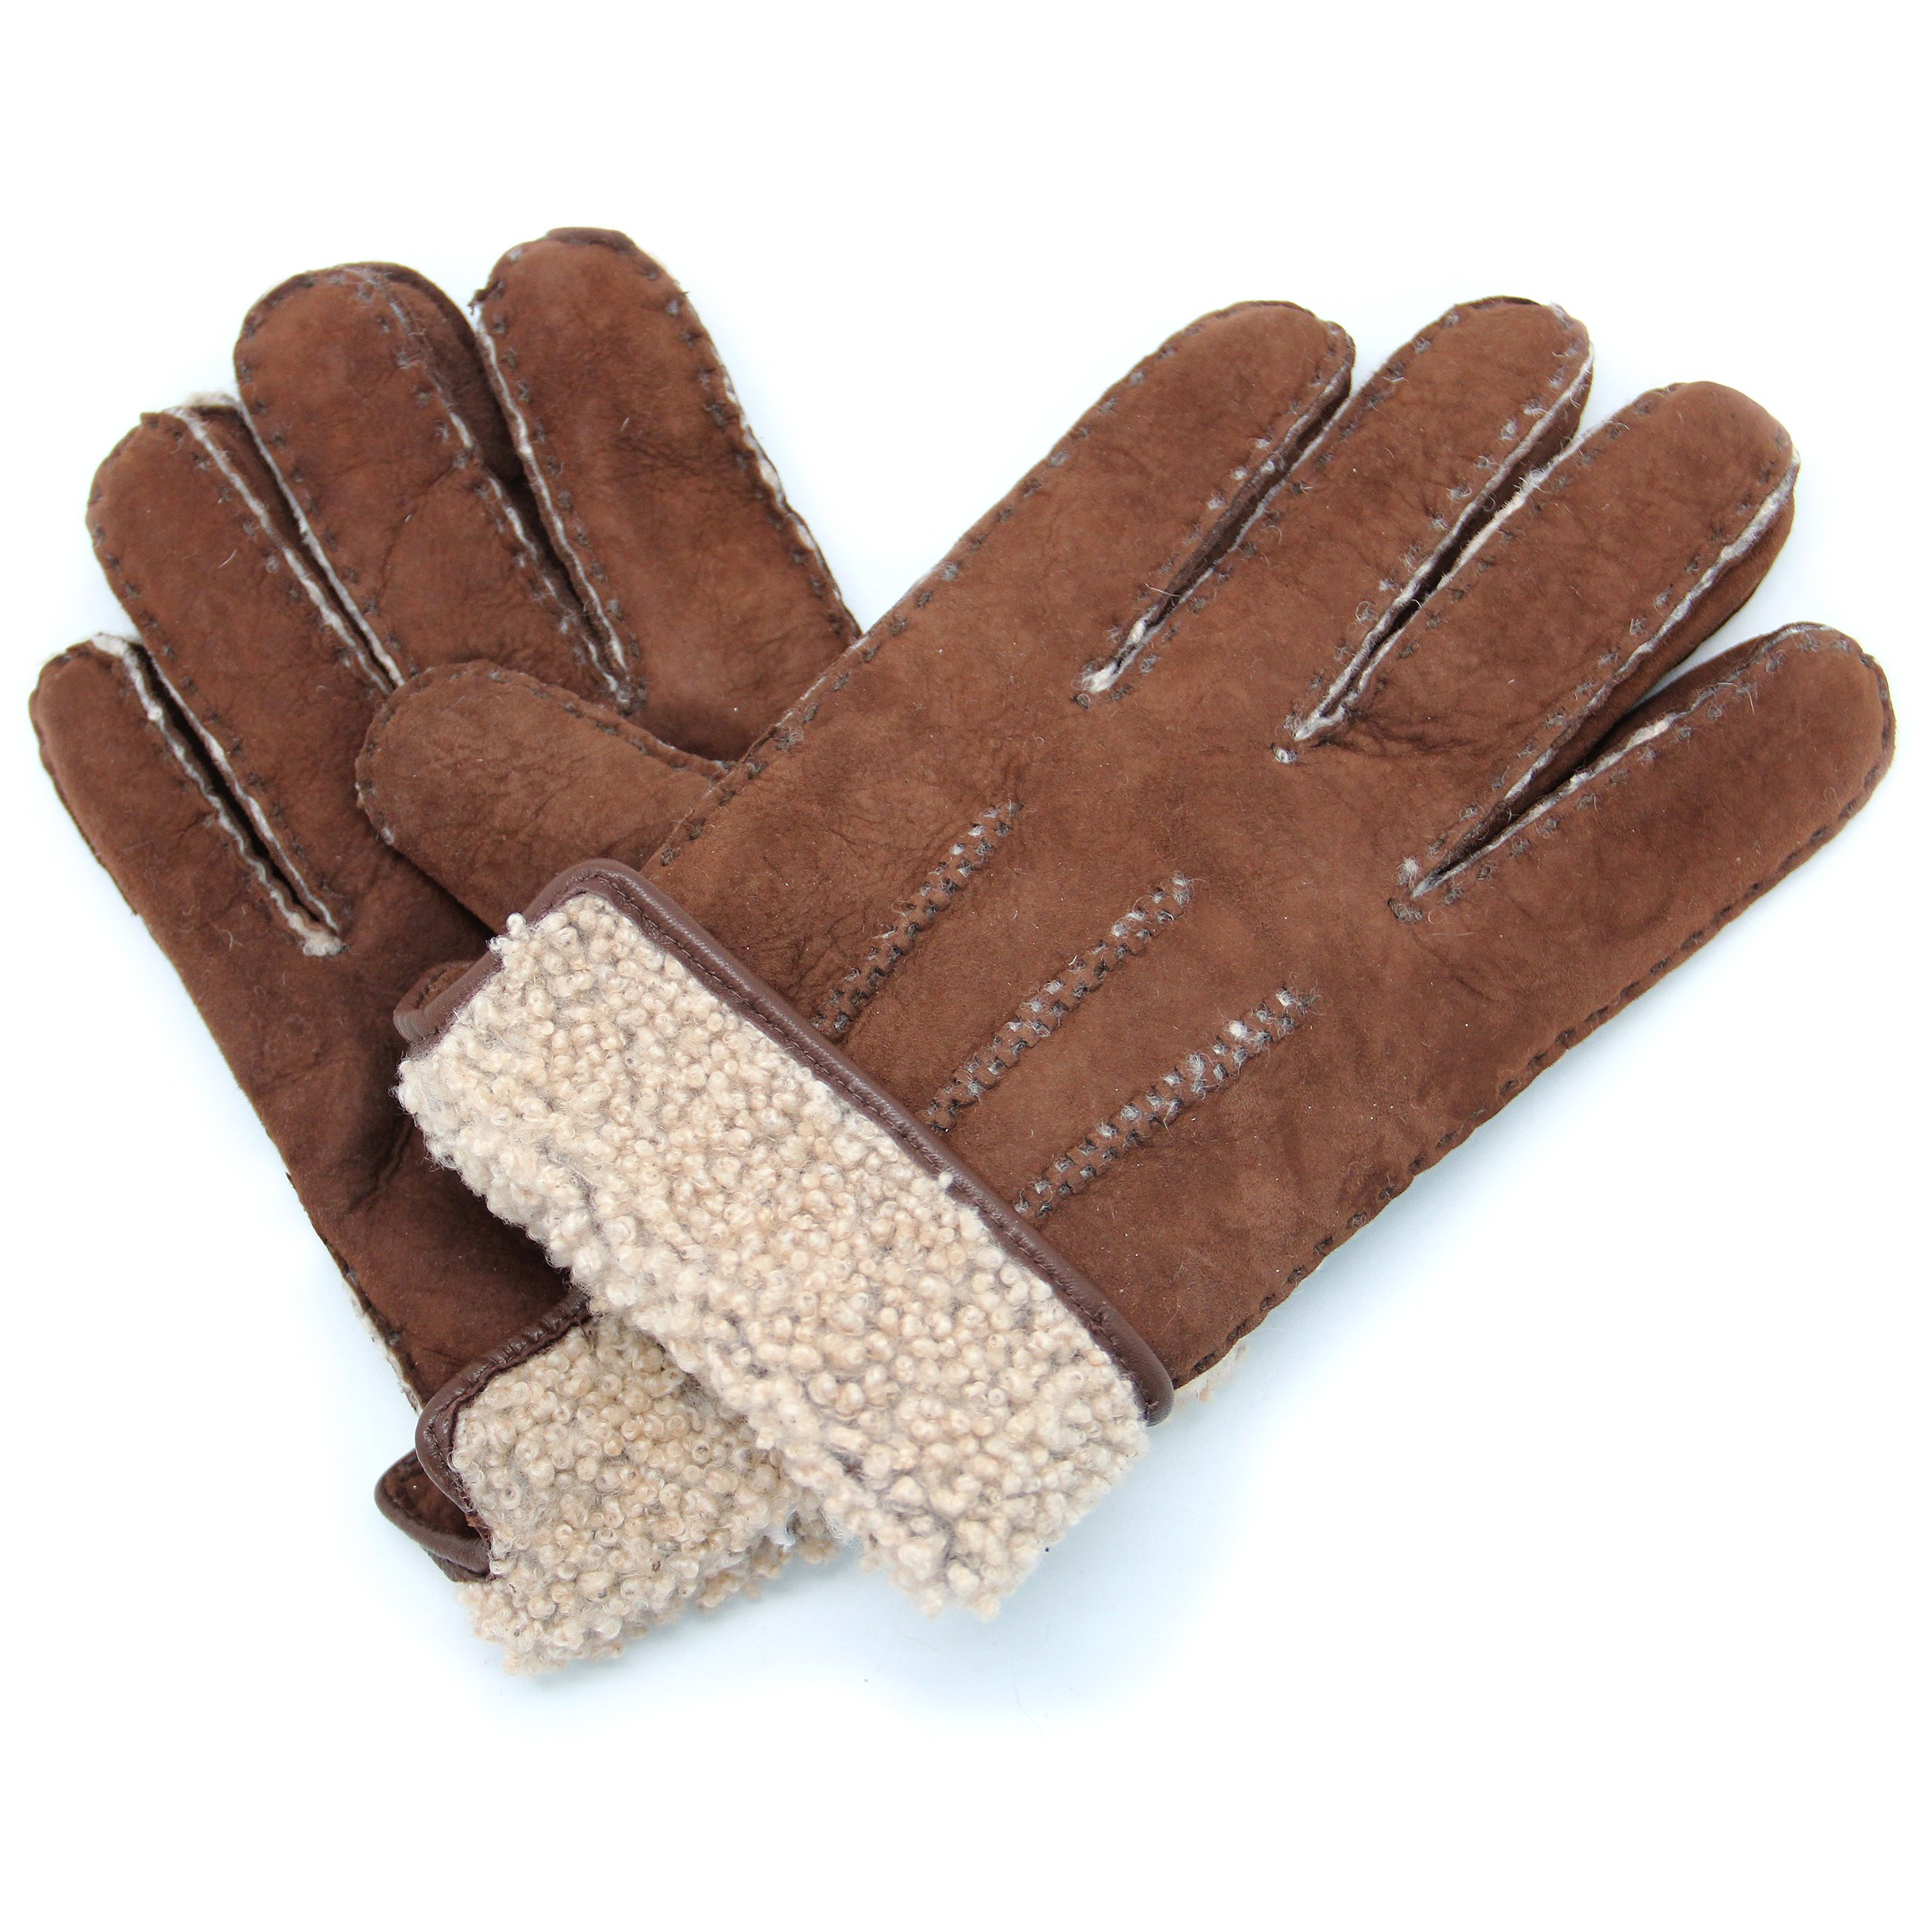 YISEVEN Men's Curly Shearling Leather Gloves Luxury New Zealand Lambskin Handmade Curry Hair Fur Furry Lined Warm Heated Lining Cuffs for Winter Cold Weather Dress Driving Work Xmas Gifts, Brown M